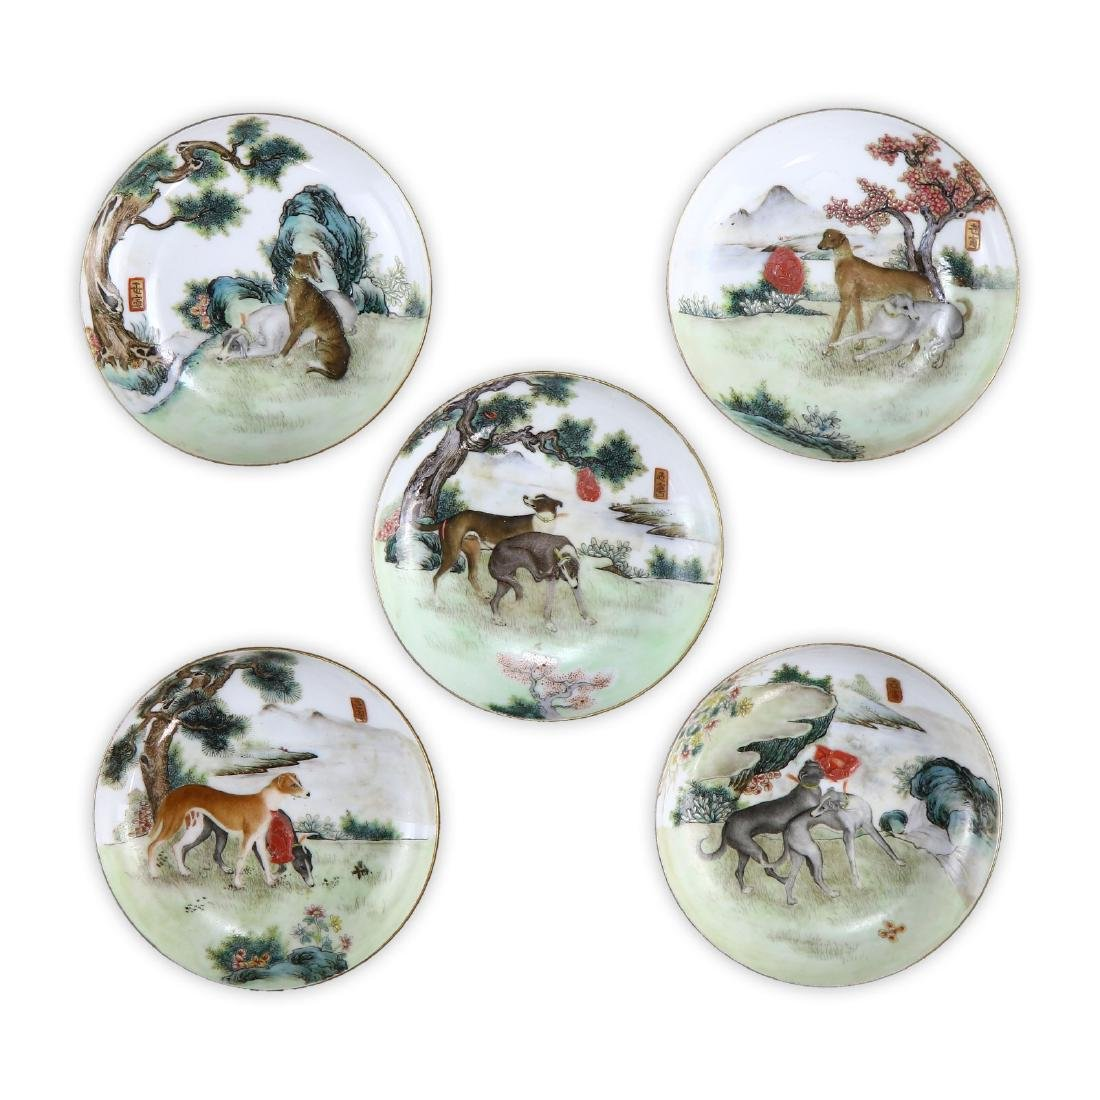 FIVE (5) CHINESE FAMILLE ROSE PORCELAIN PLATES